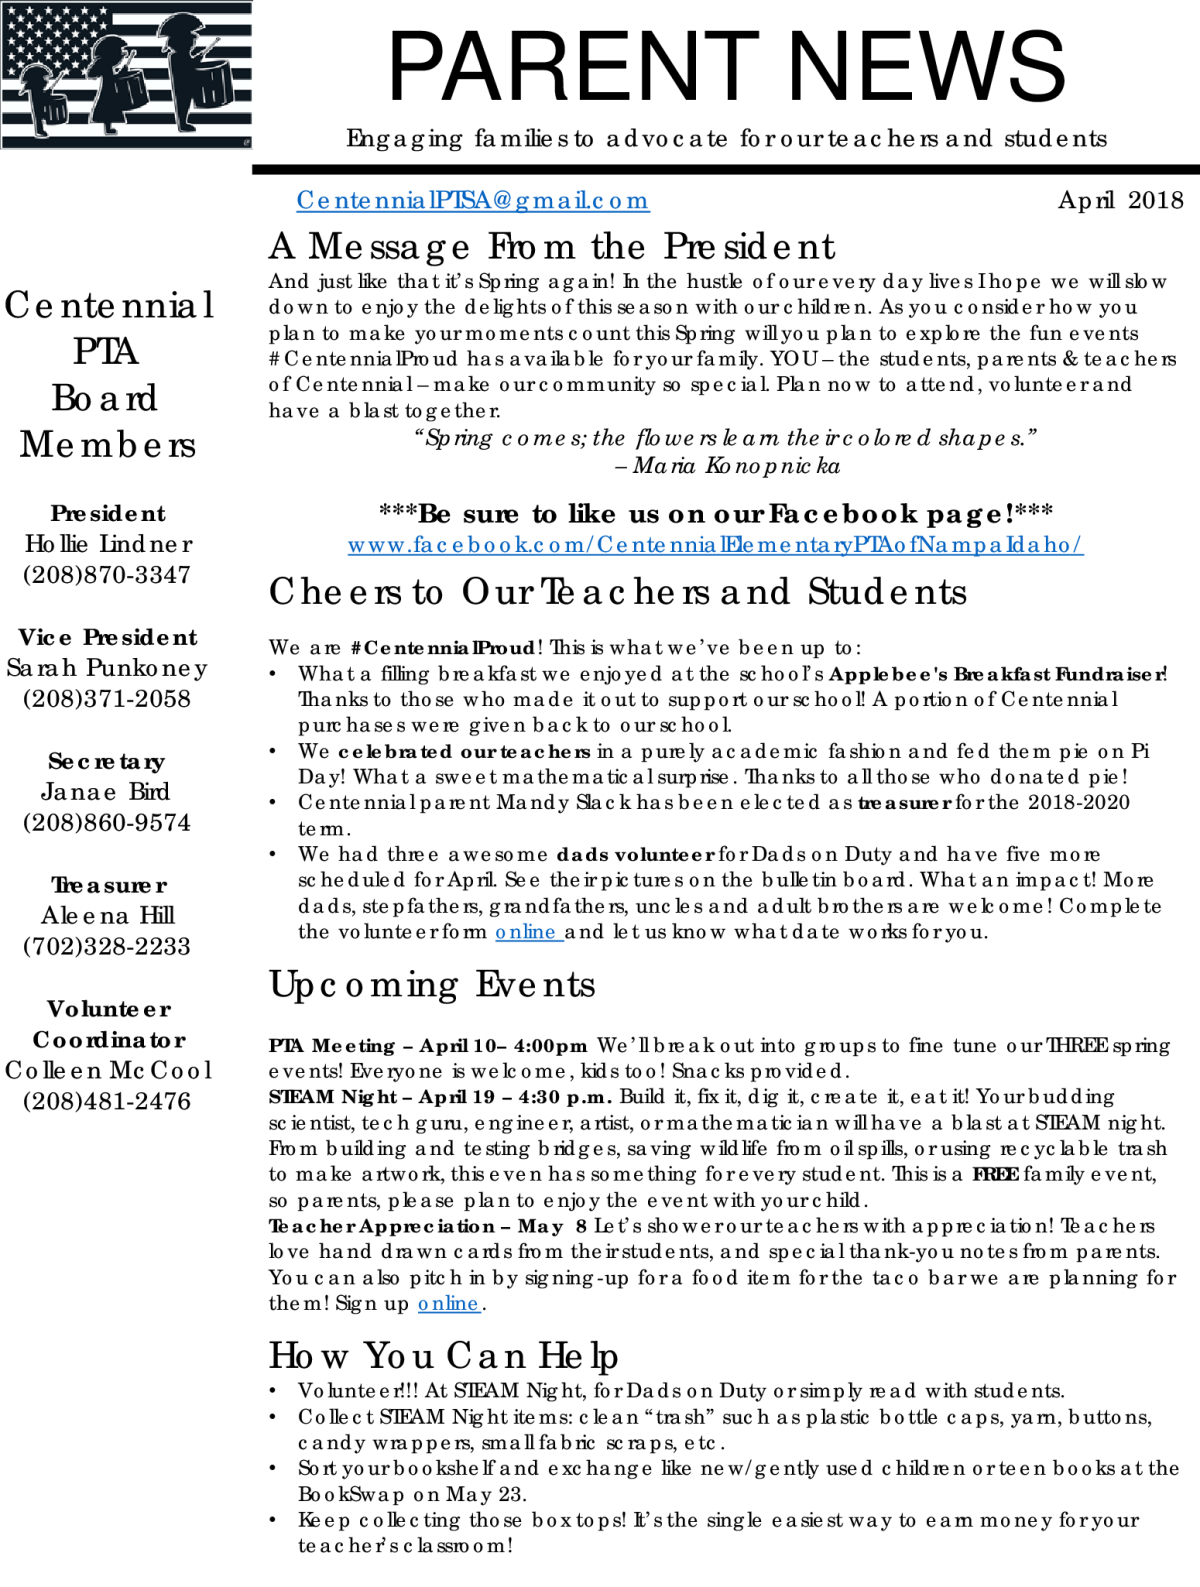 Image of a flyer titled April PTSA Newsletter